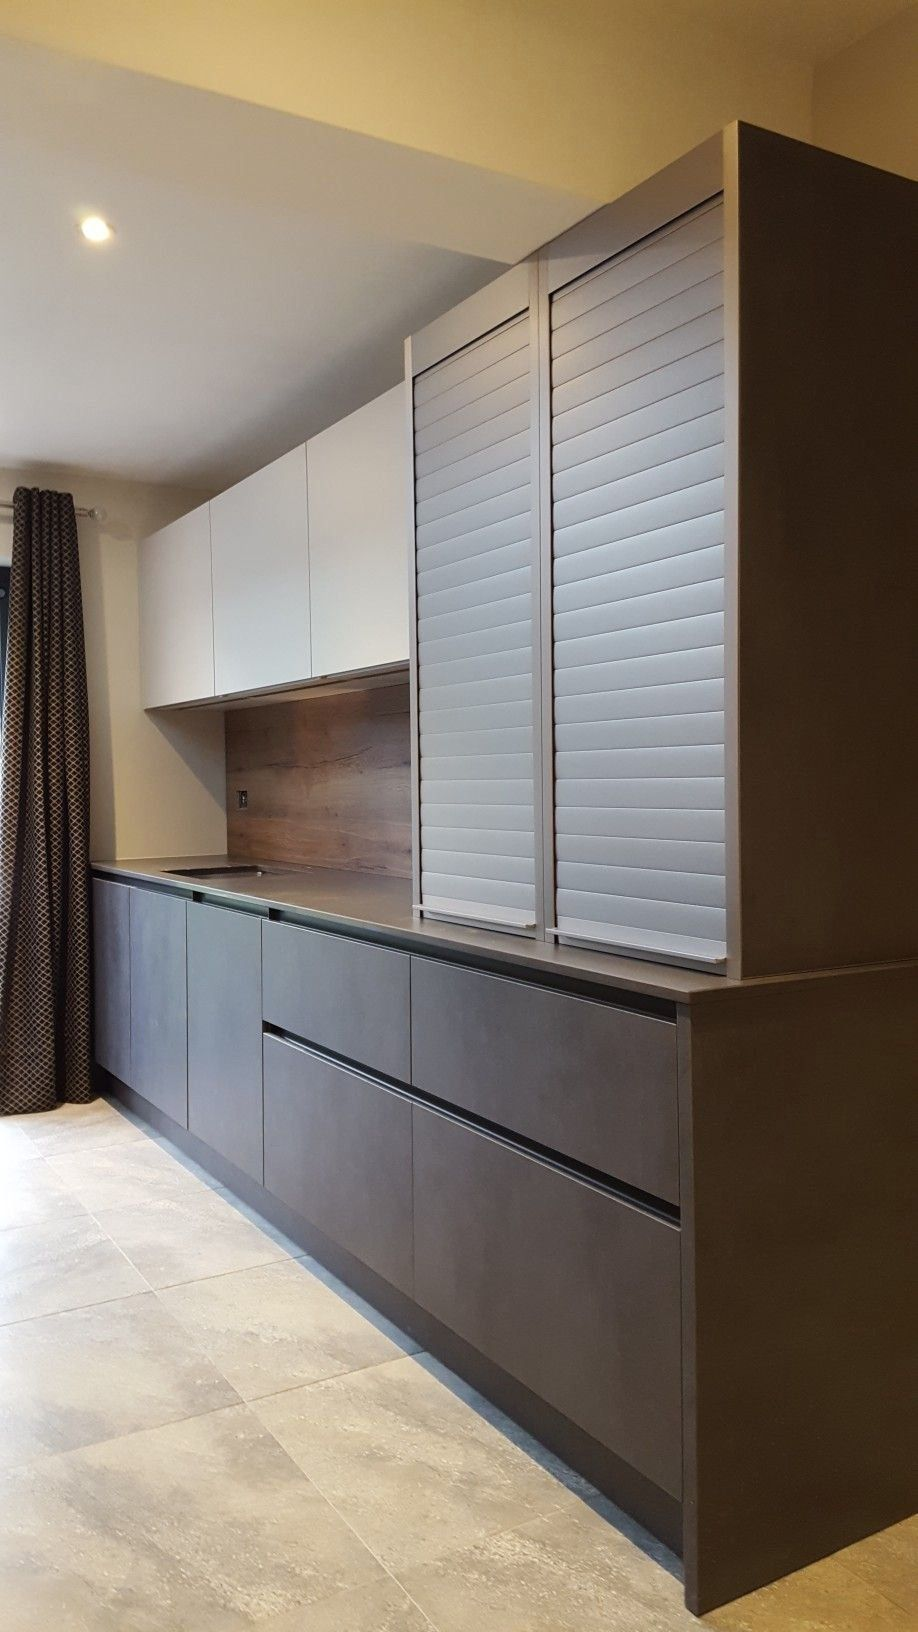 Roller Shutter Tambour Units From Leicht Contact Hubble Kitchens Your Sussex An 1000 In 2020 Kitchen Room Design Cupboard Design Kitchen Cupboard Designs